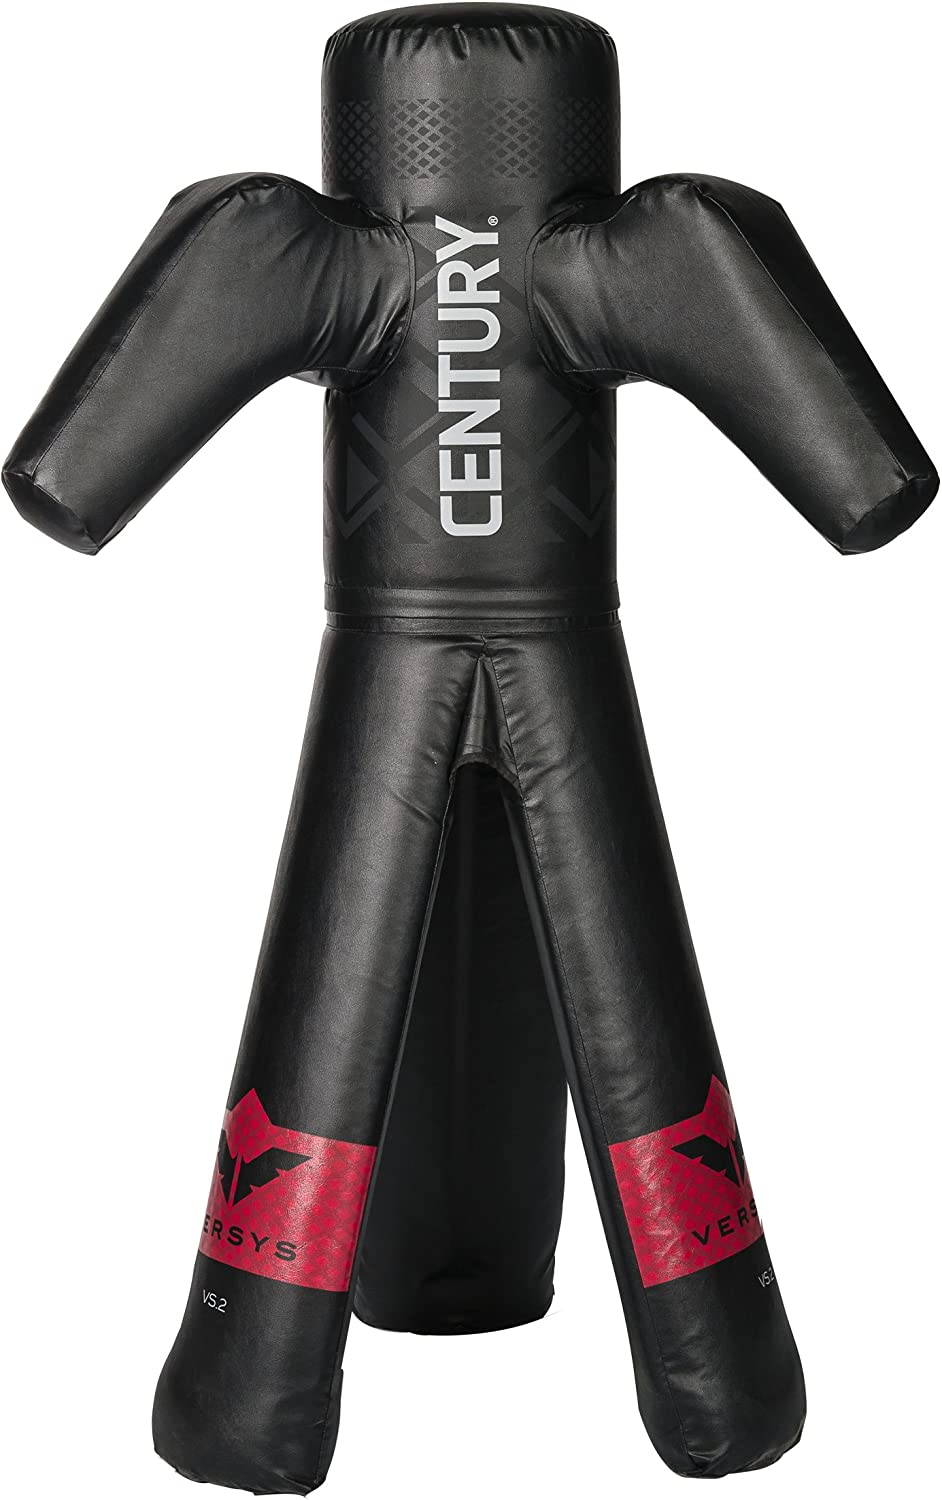 Century VS.2 Versys Grappling Simulator Red Black Max 68% OFF Bag Punching Free Shipping New